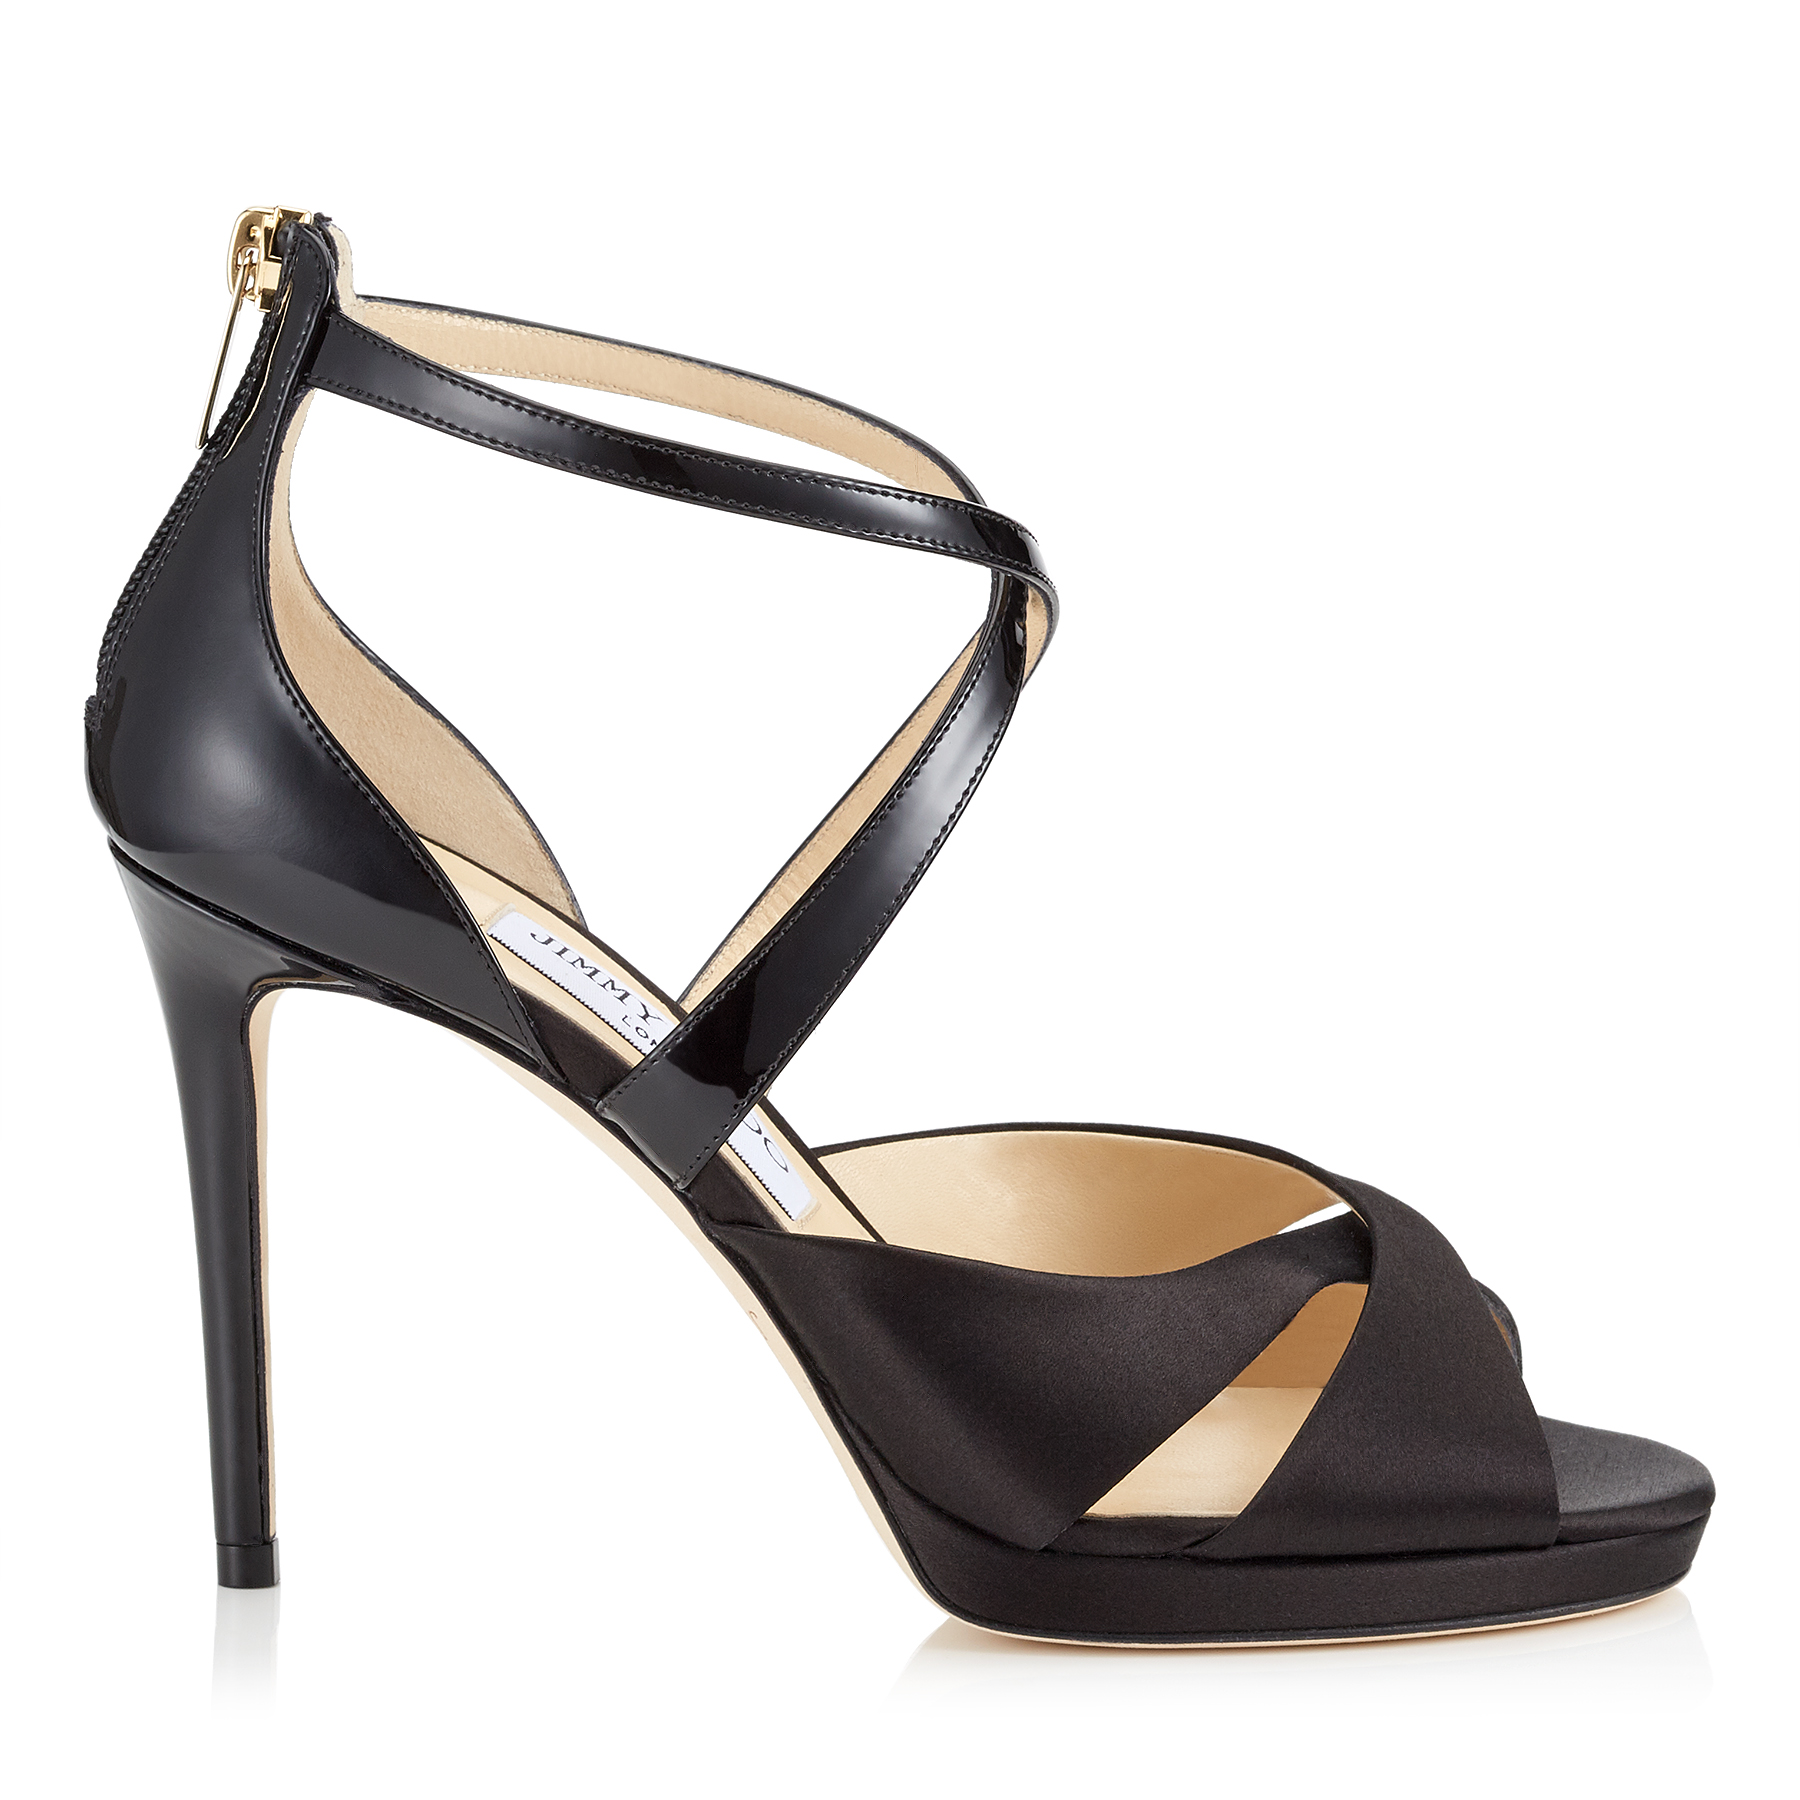 LORINA 100 Black Satin and Patent Sandals by Jimmy Choo